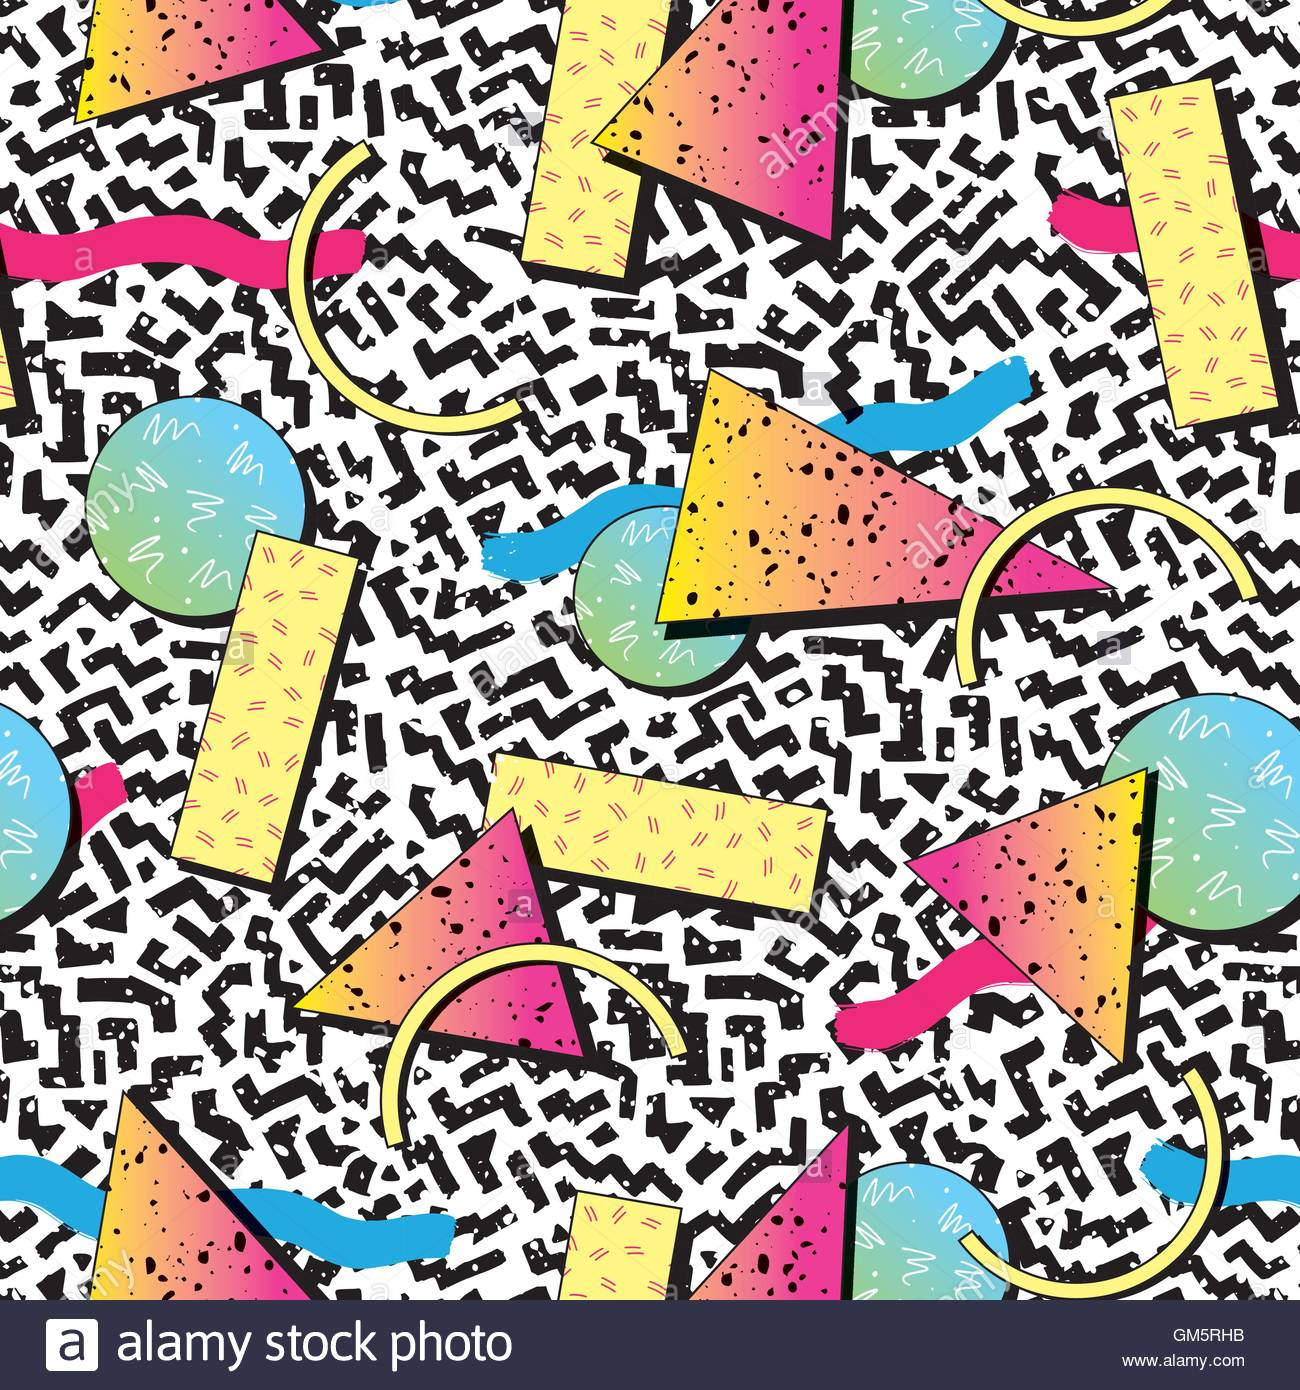 vibrant and colourful patterns inspired by the graphic design of the